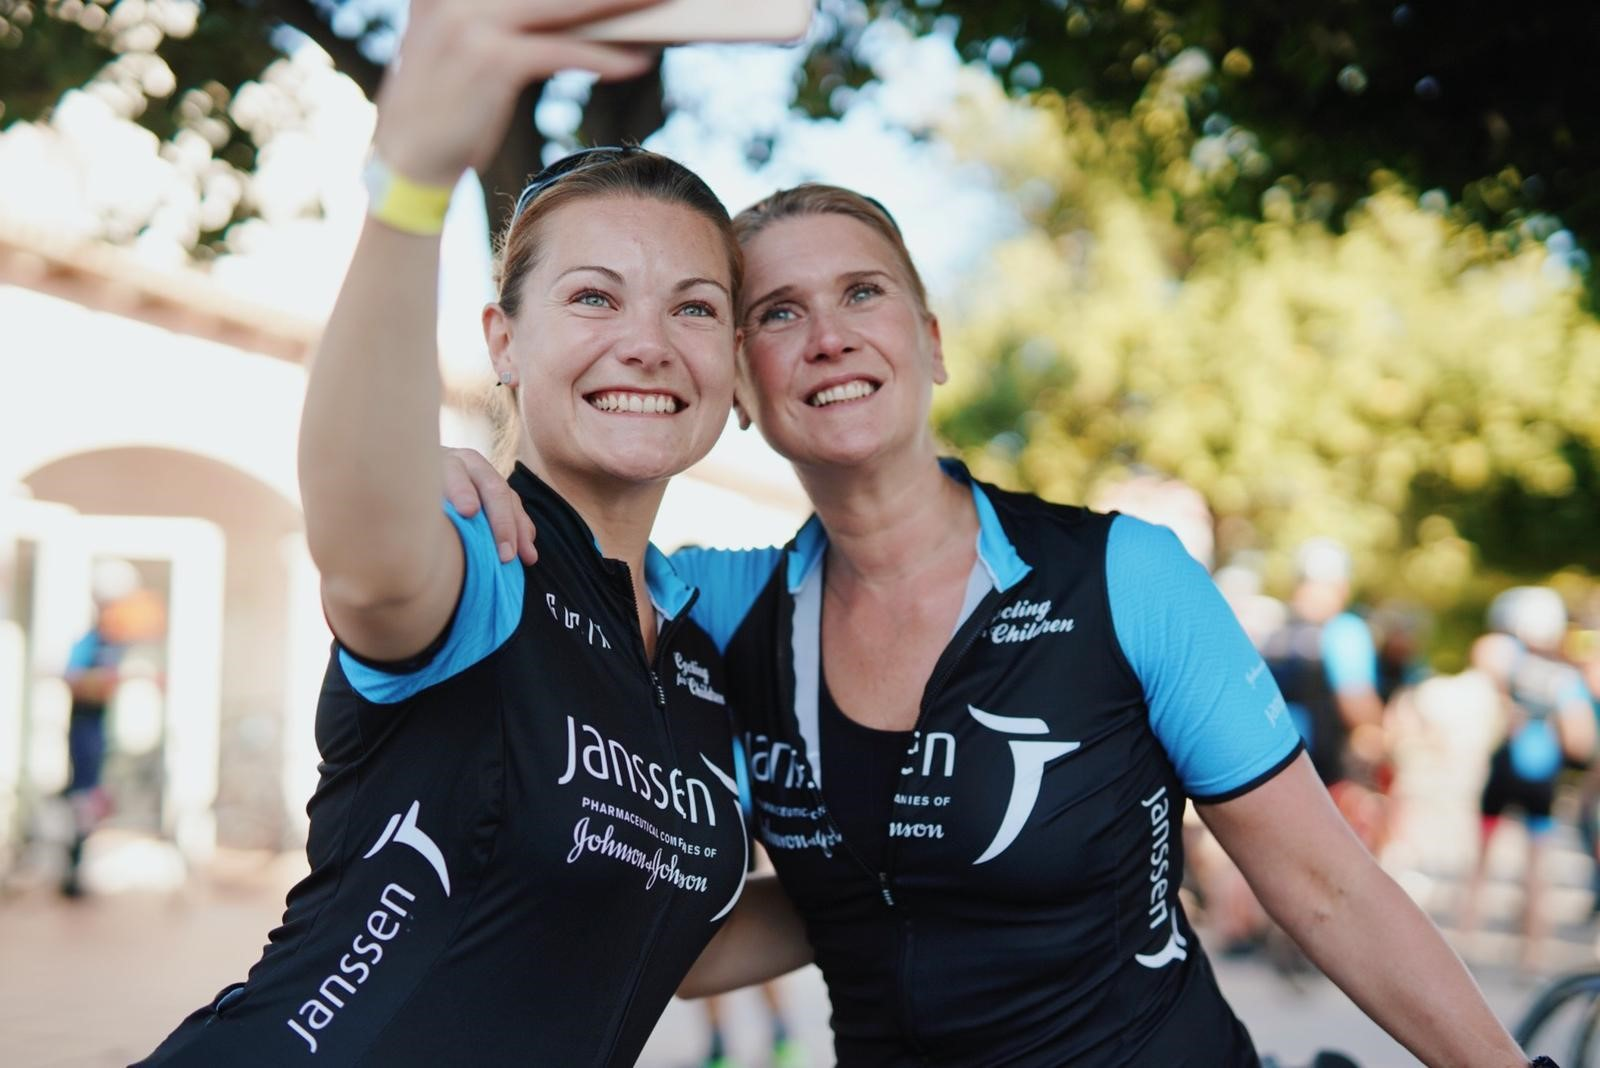 Cycling For Children 19 selfie